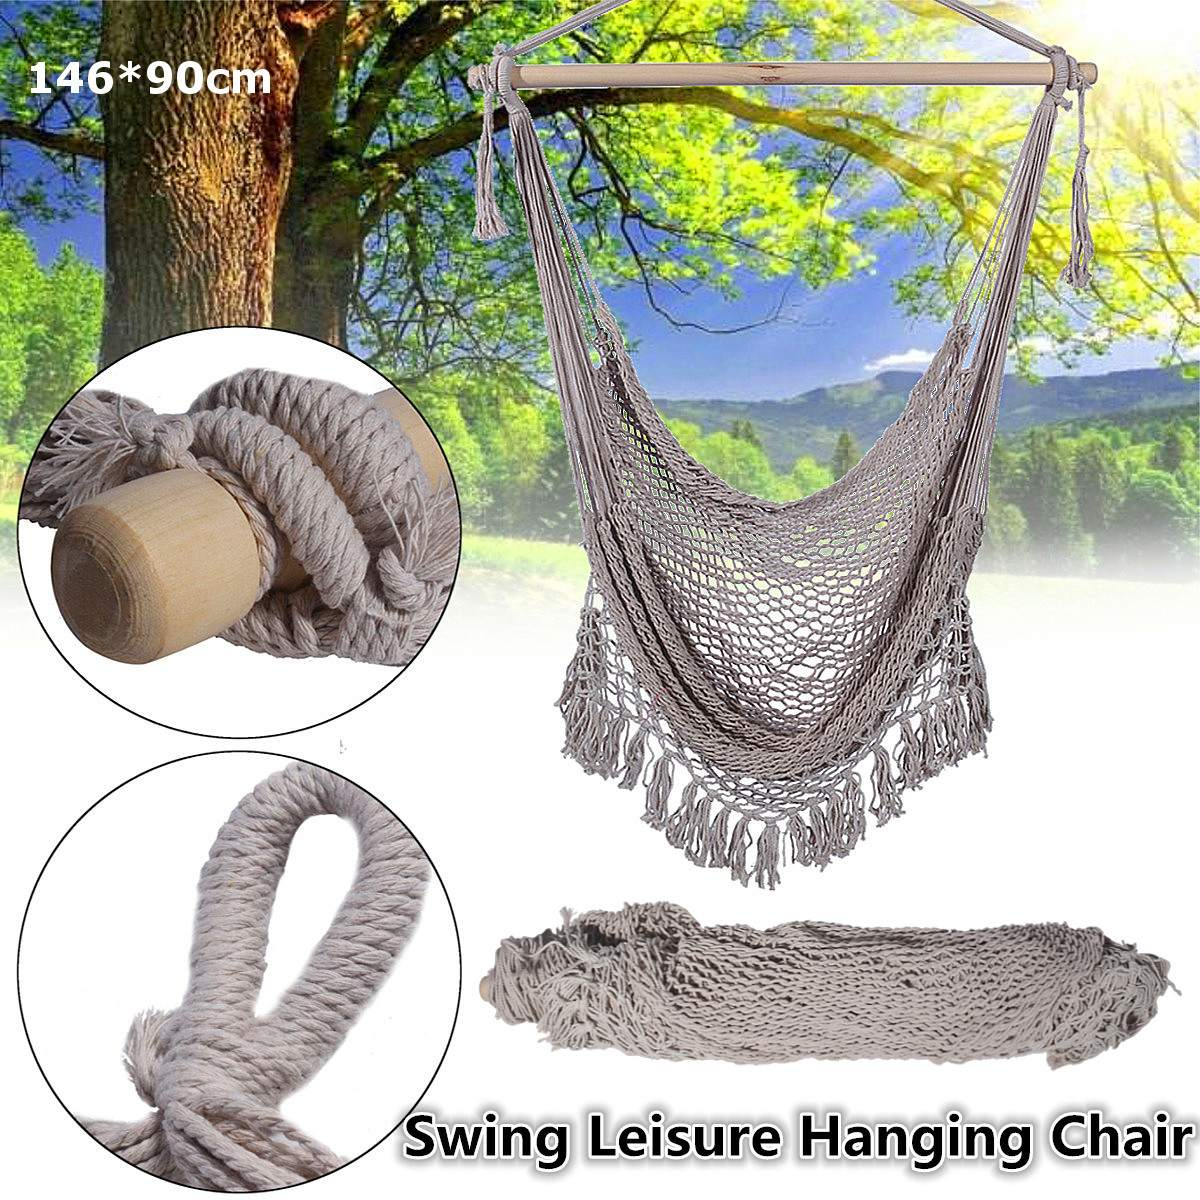 Wondrous 2019 Outdoor Hammock Chair Hanging Chairs Swing Cotton Rope Net Swing Cradles Kids Adults Ba Lcony Garden Indoor Travel Portable Hot From Flaminglily Ncnpc Chair Design For Home Ncnpcorg